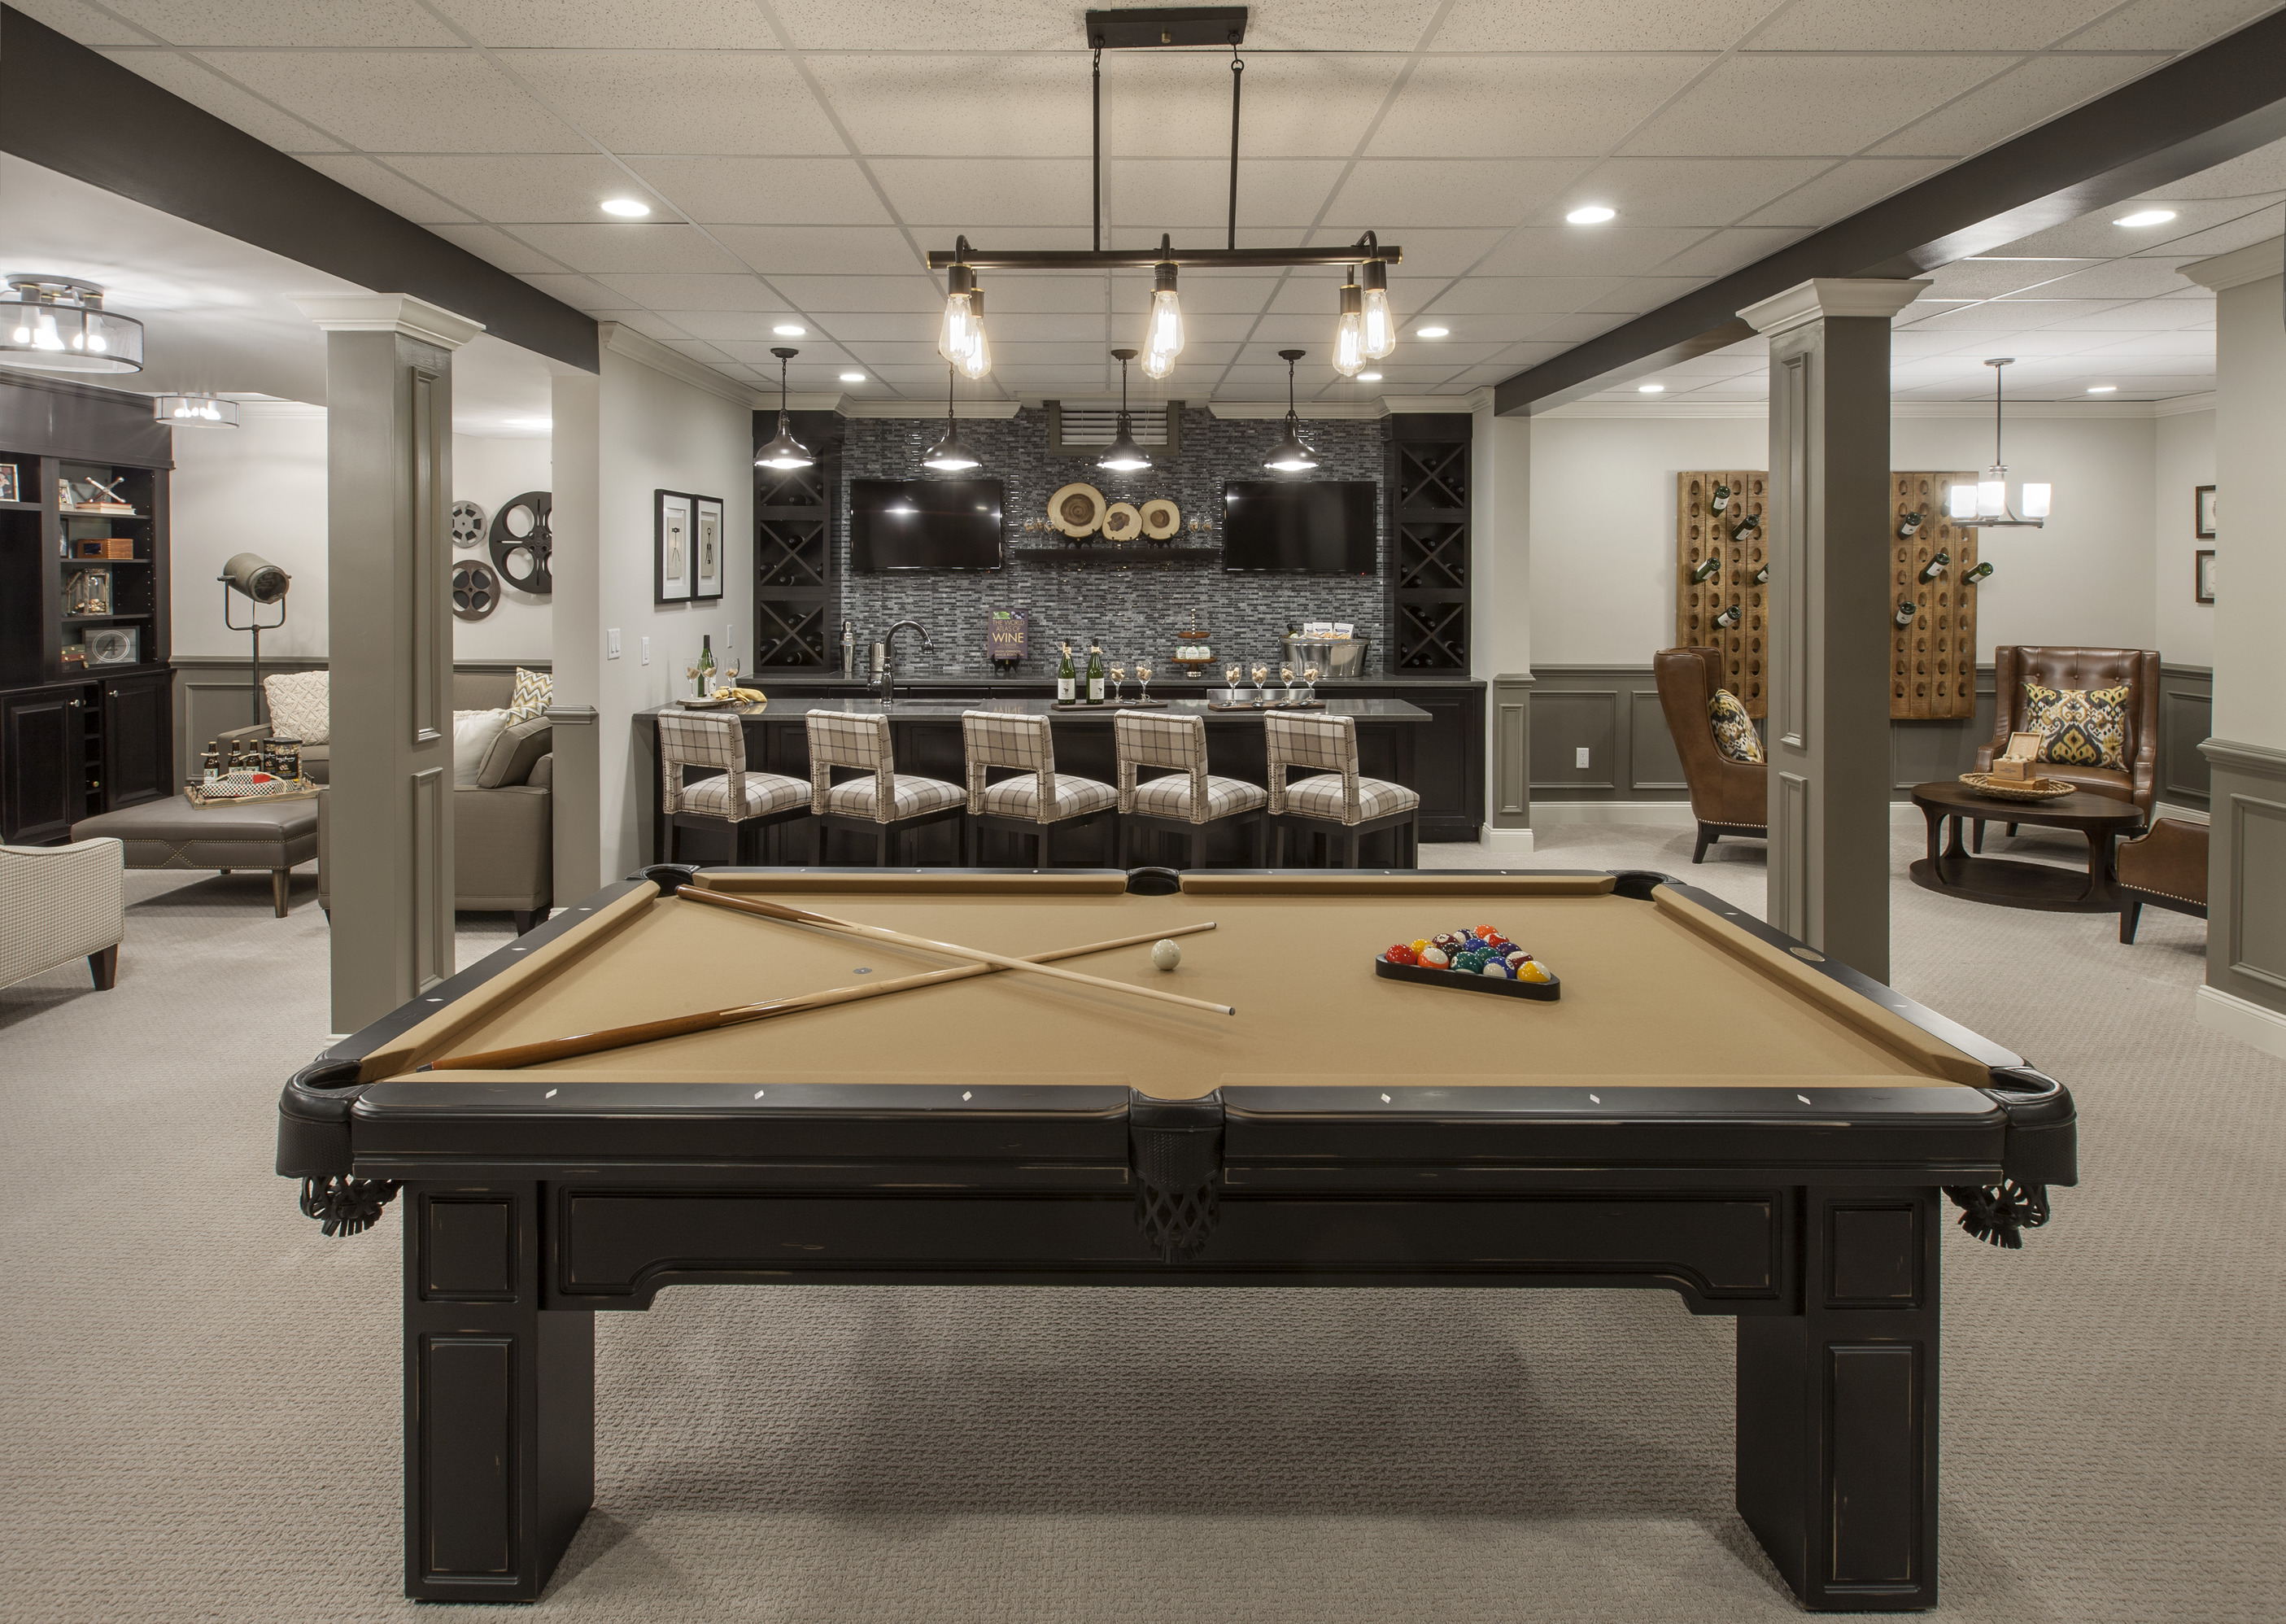 Basement with a bar and a pool table.